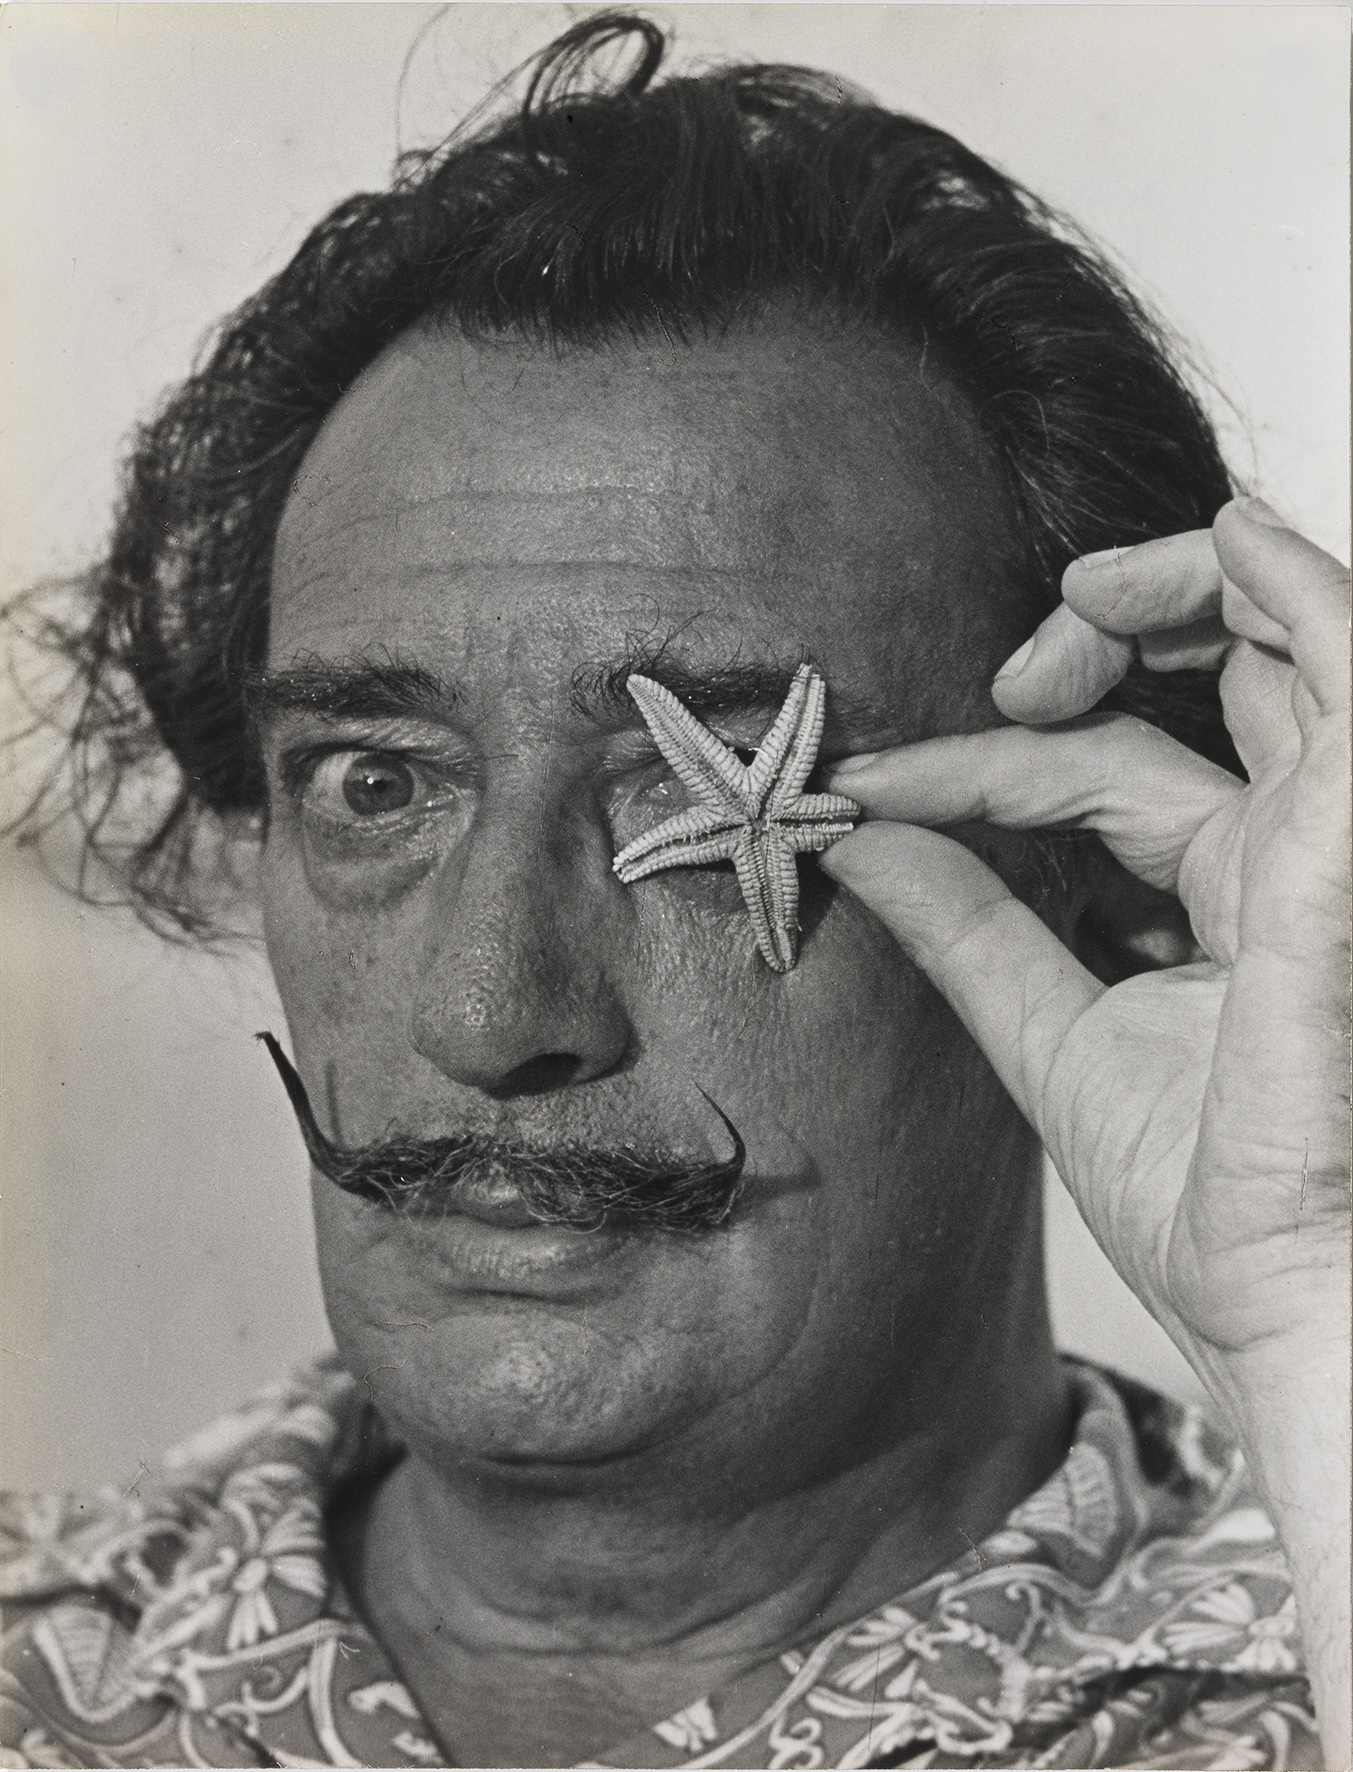 © X. Miserachs/Fundació Gala-Salvador Dalí, Figueres, 2016. Image Rights of Salvador Dalí reserved. Fundació Gala-Salvador Dalí, Figueres, 2016.